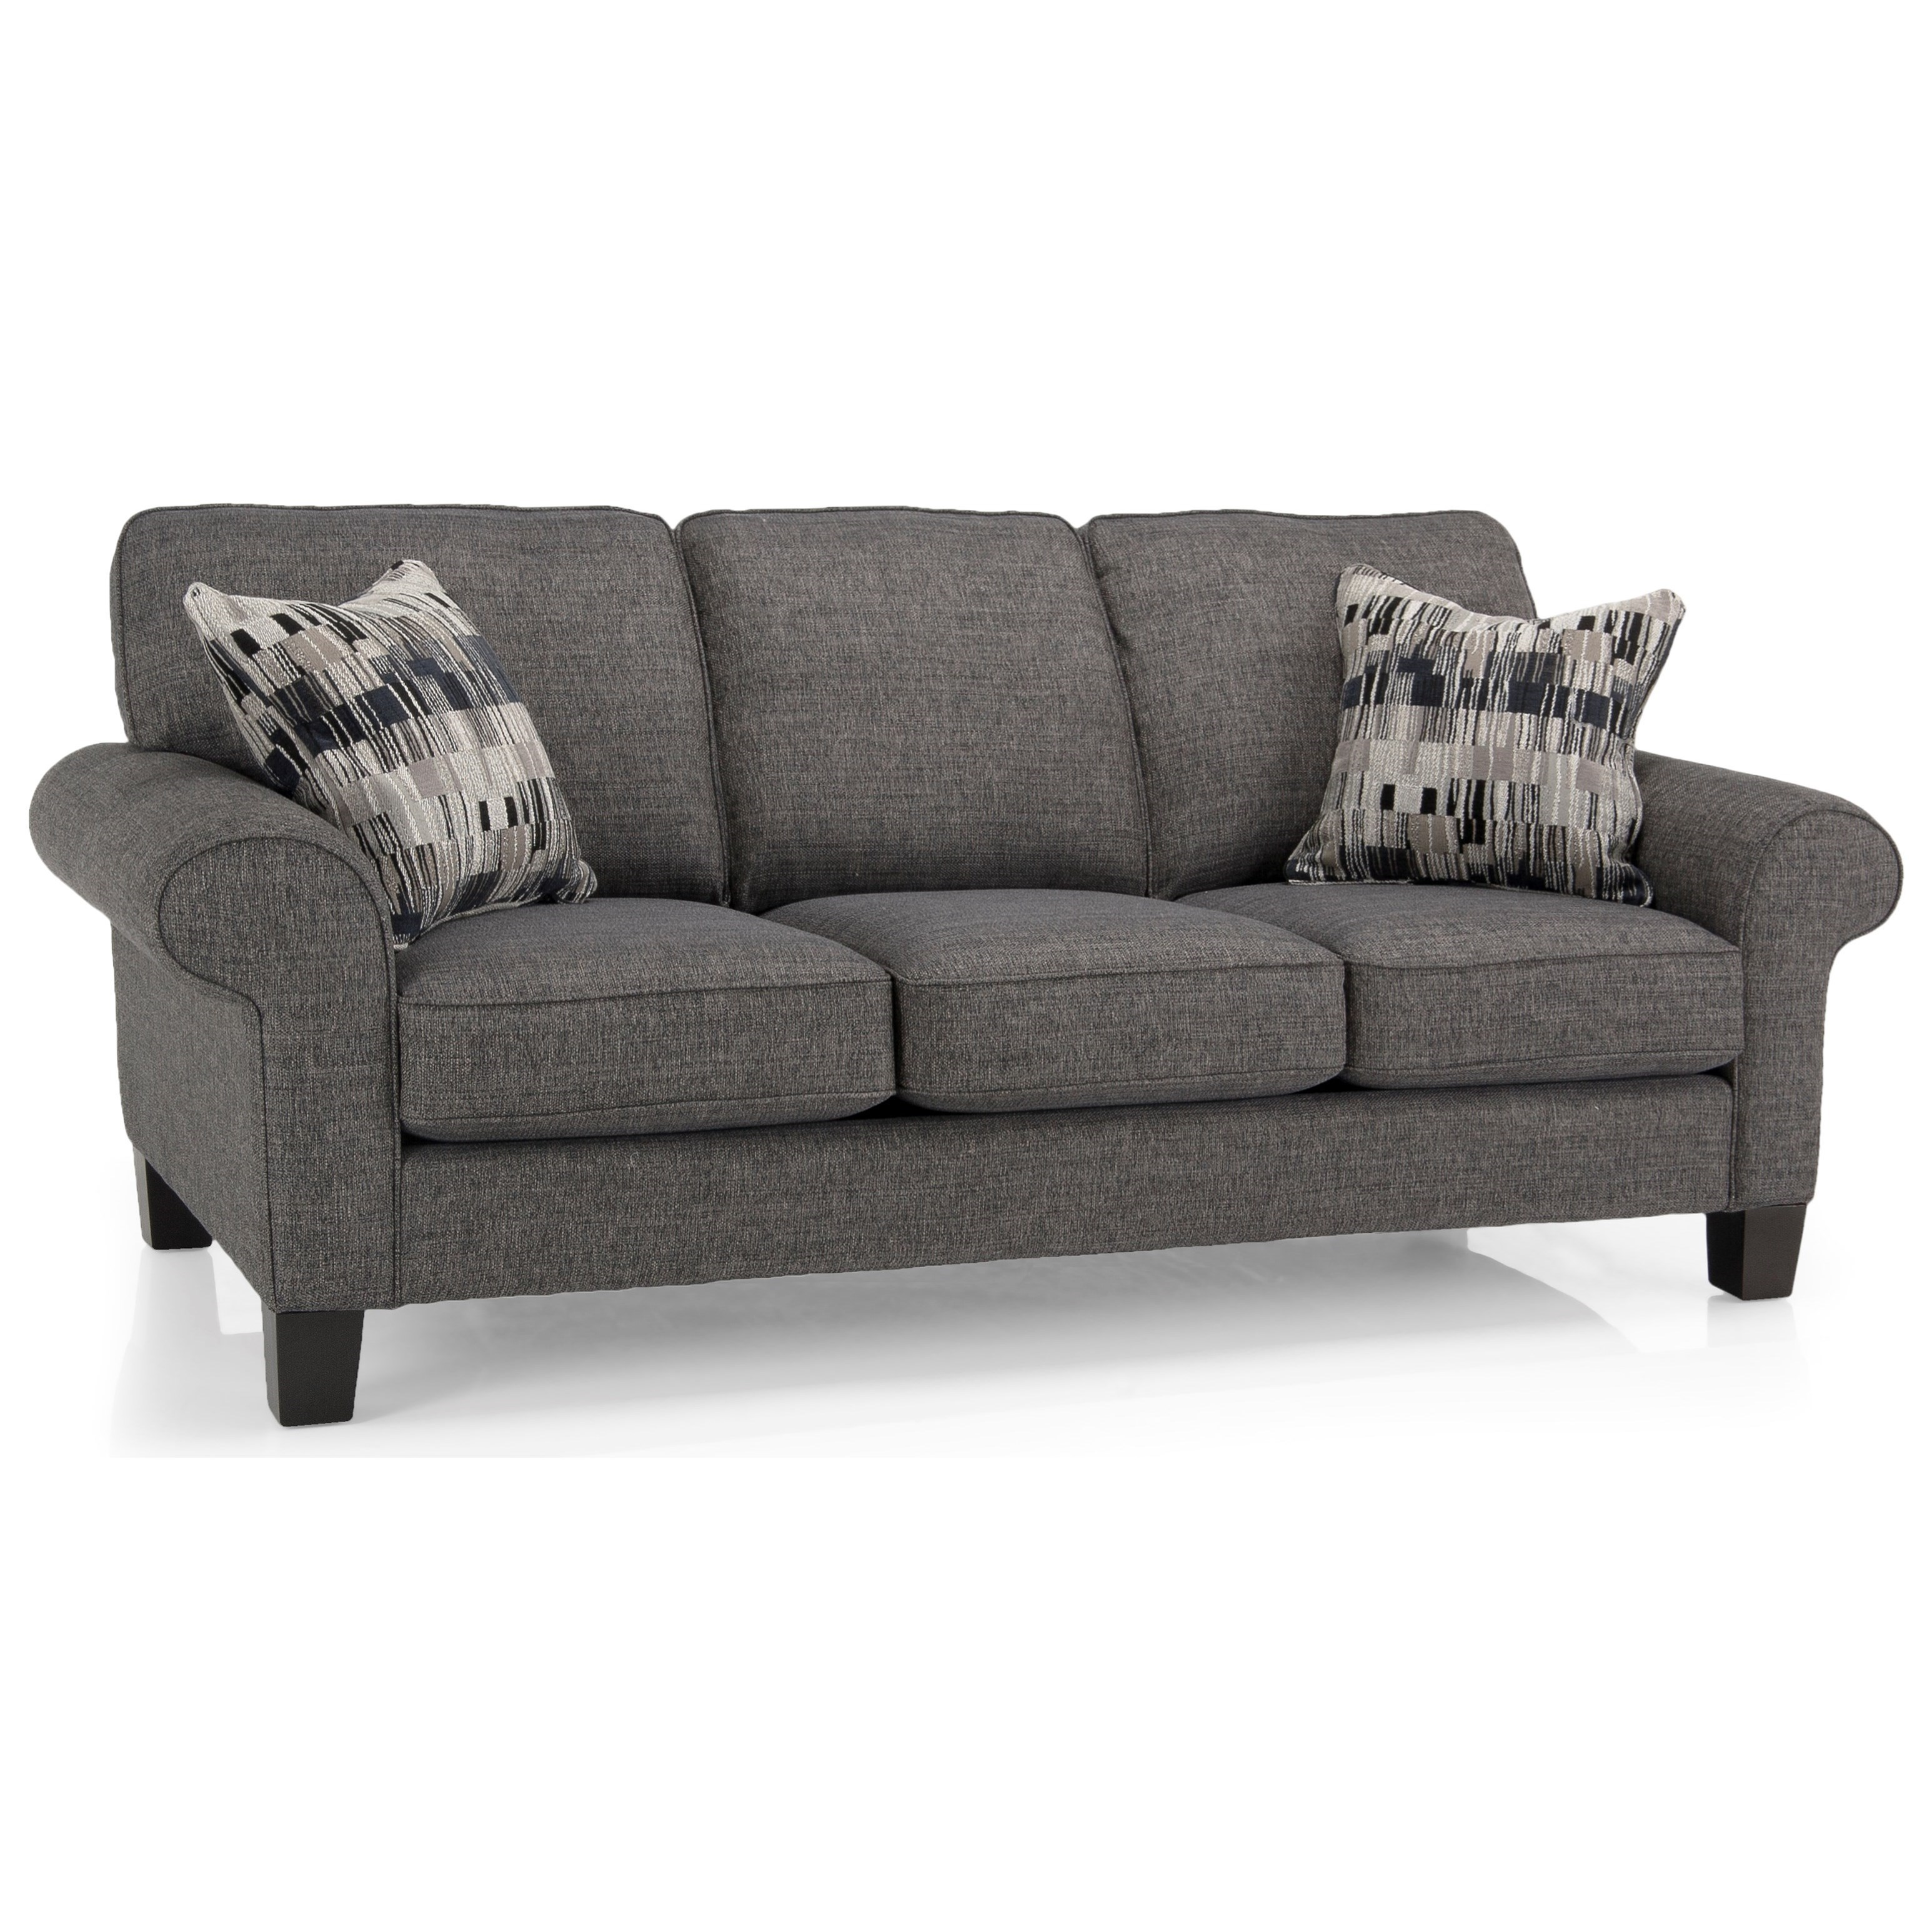 Decor-Rest 2323 Sofa - Item Number: 2323S-BALA GRA